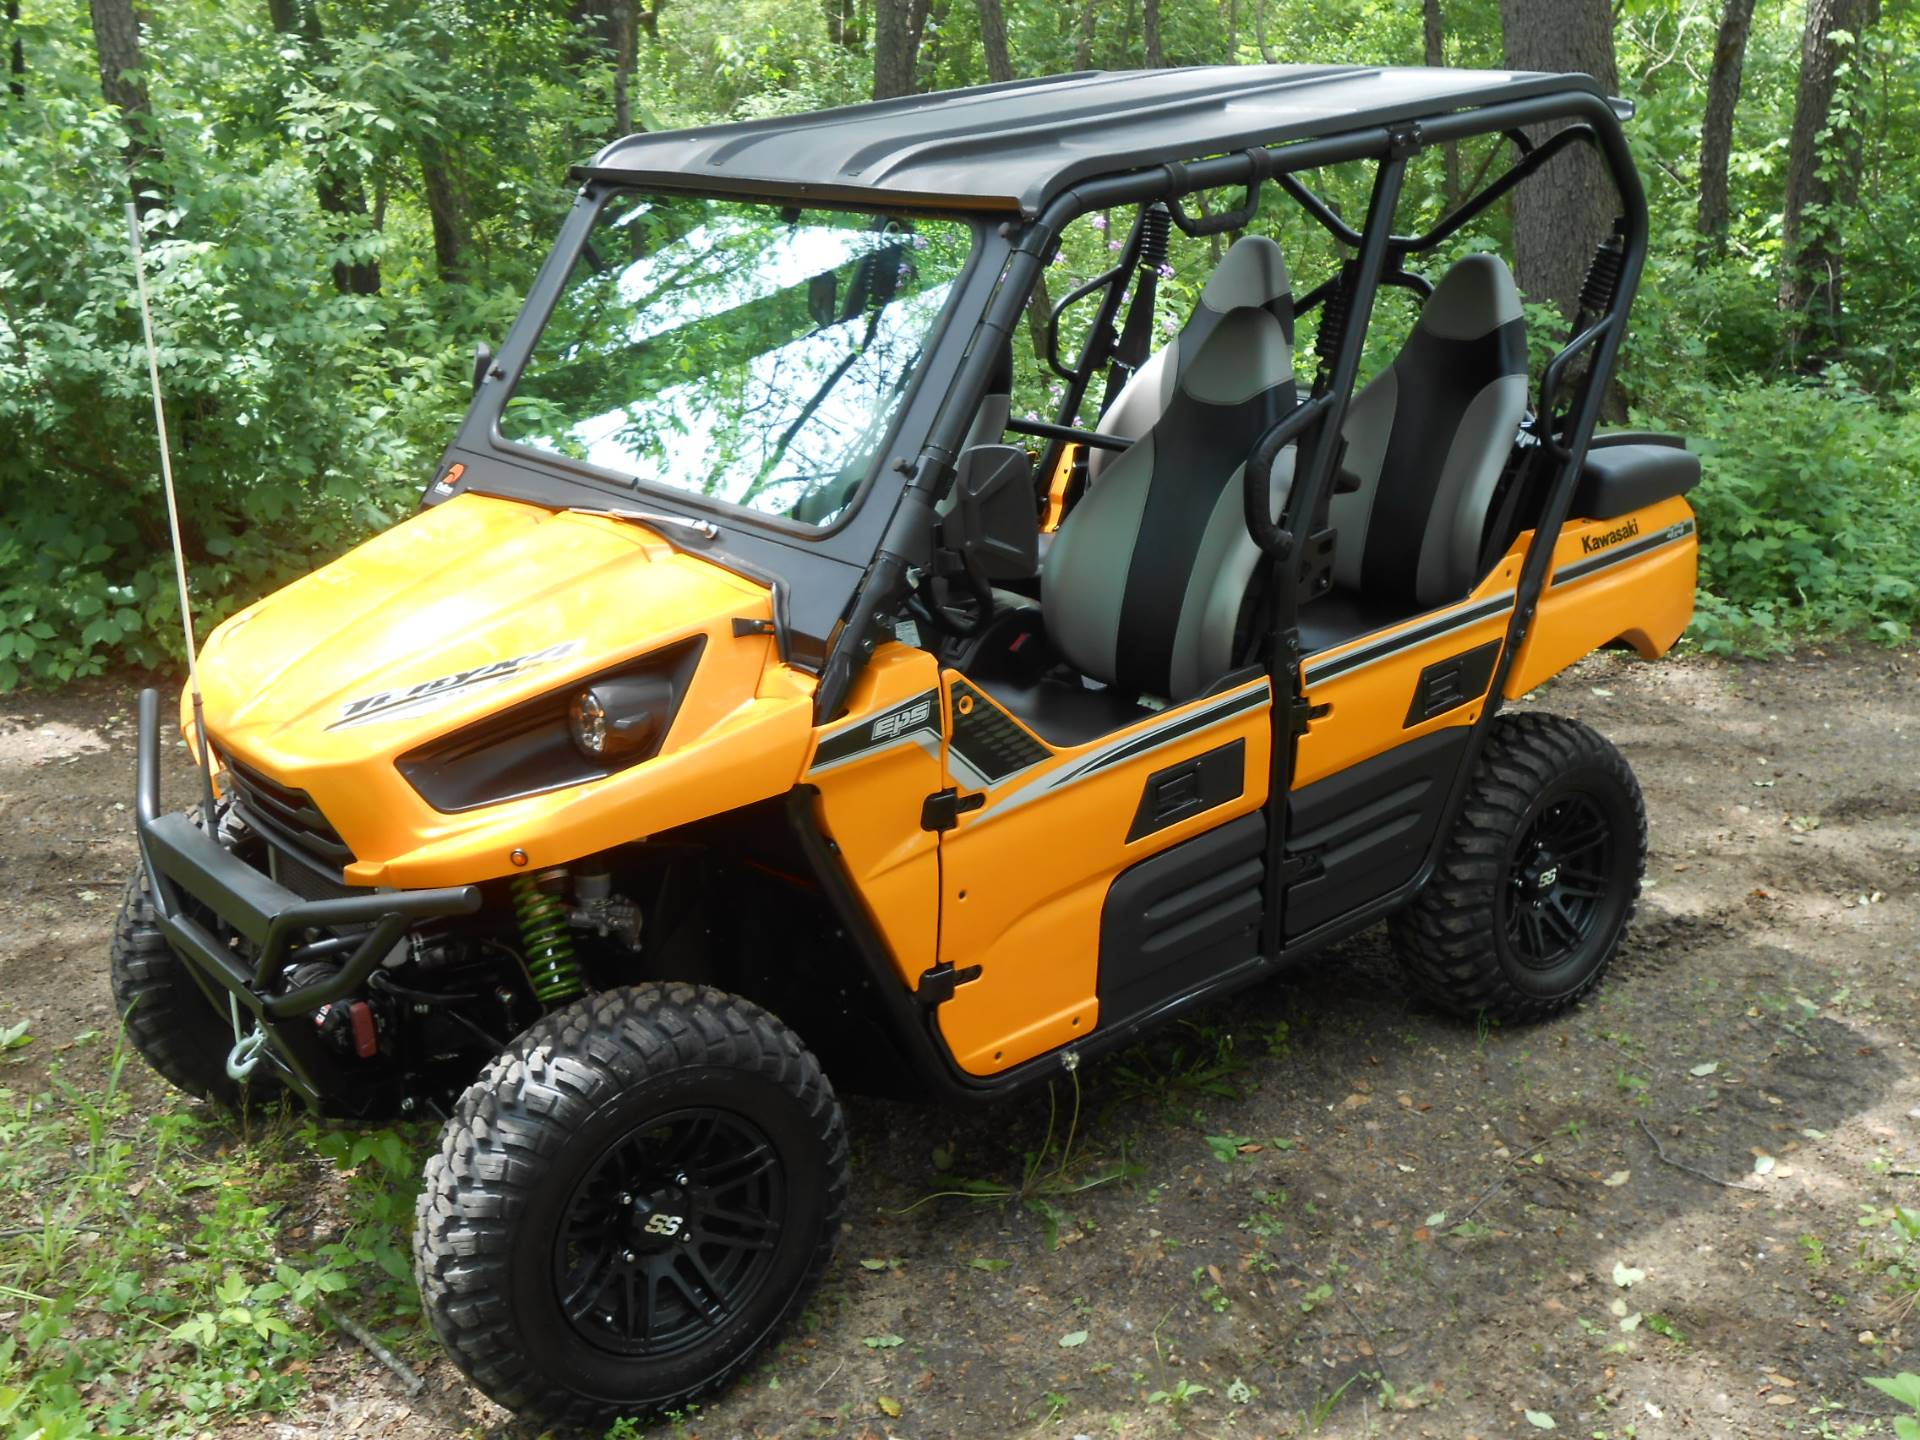 2013 Kawasaki Teryx4™ 750 4x4 EPS LE in Howell, Michigan - Photo 1